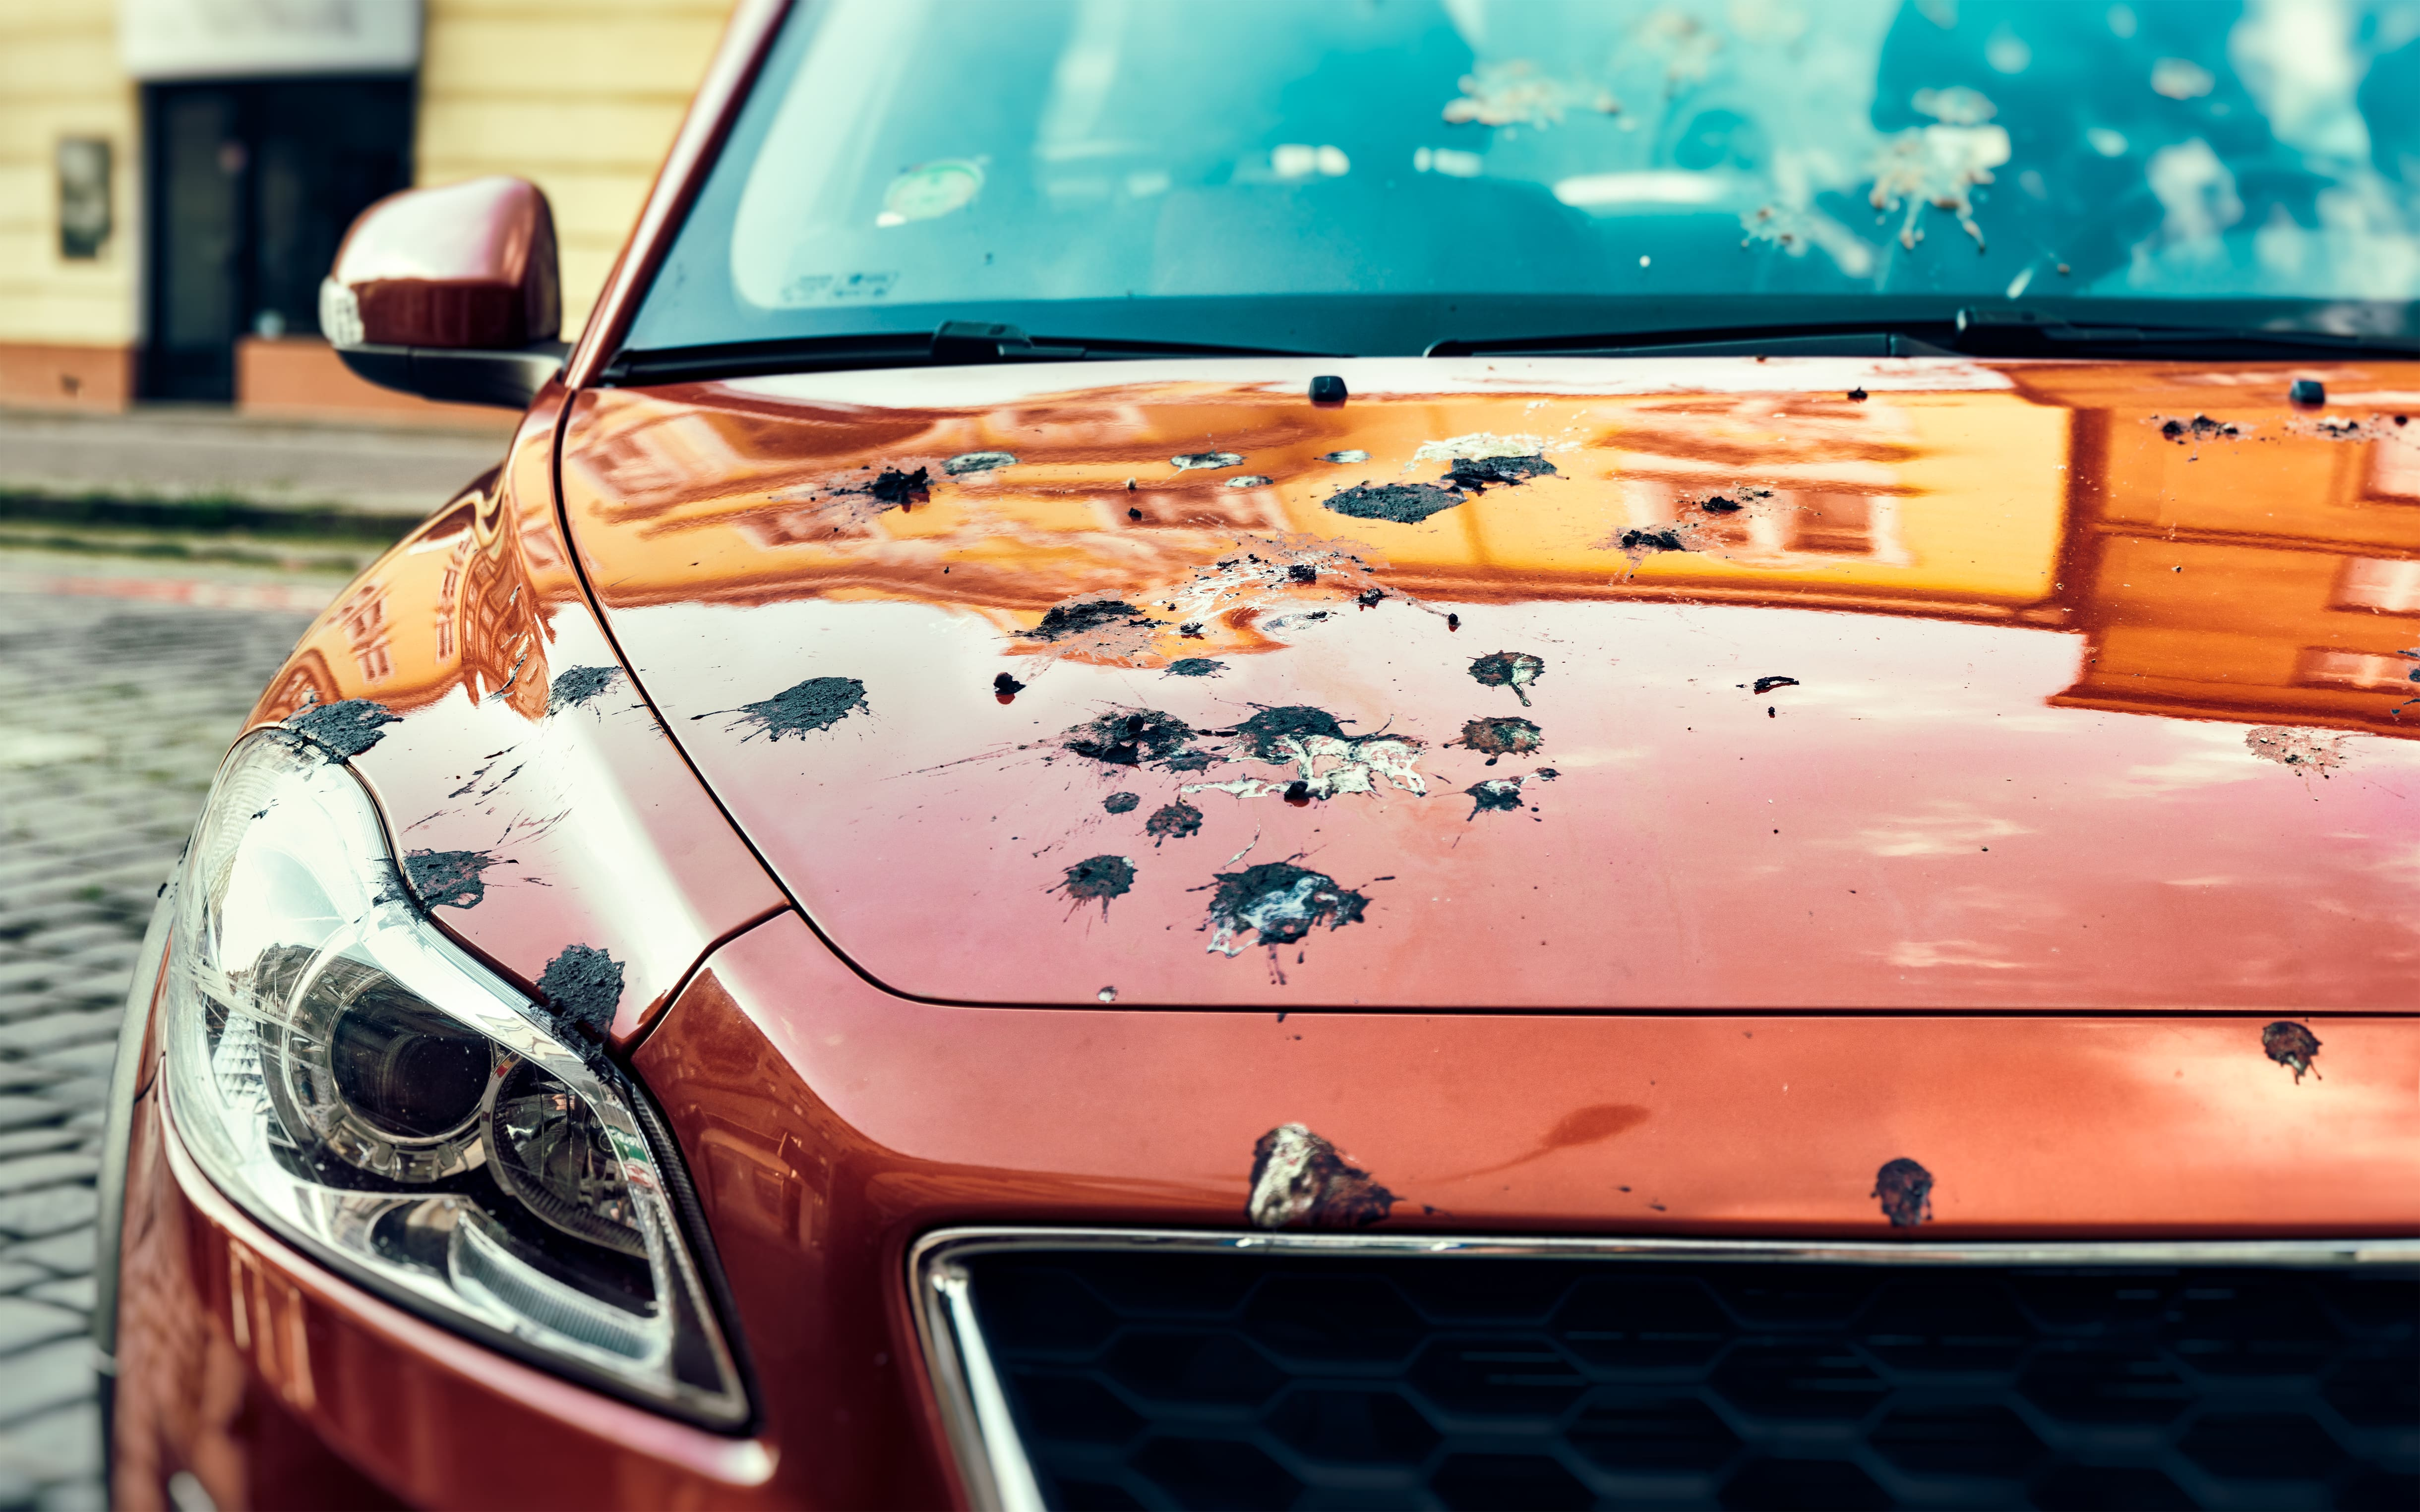 car-covered-bird-droppings